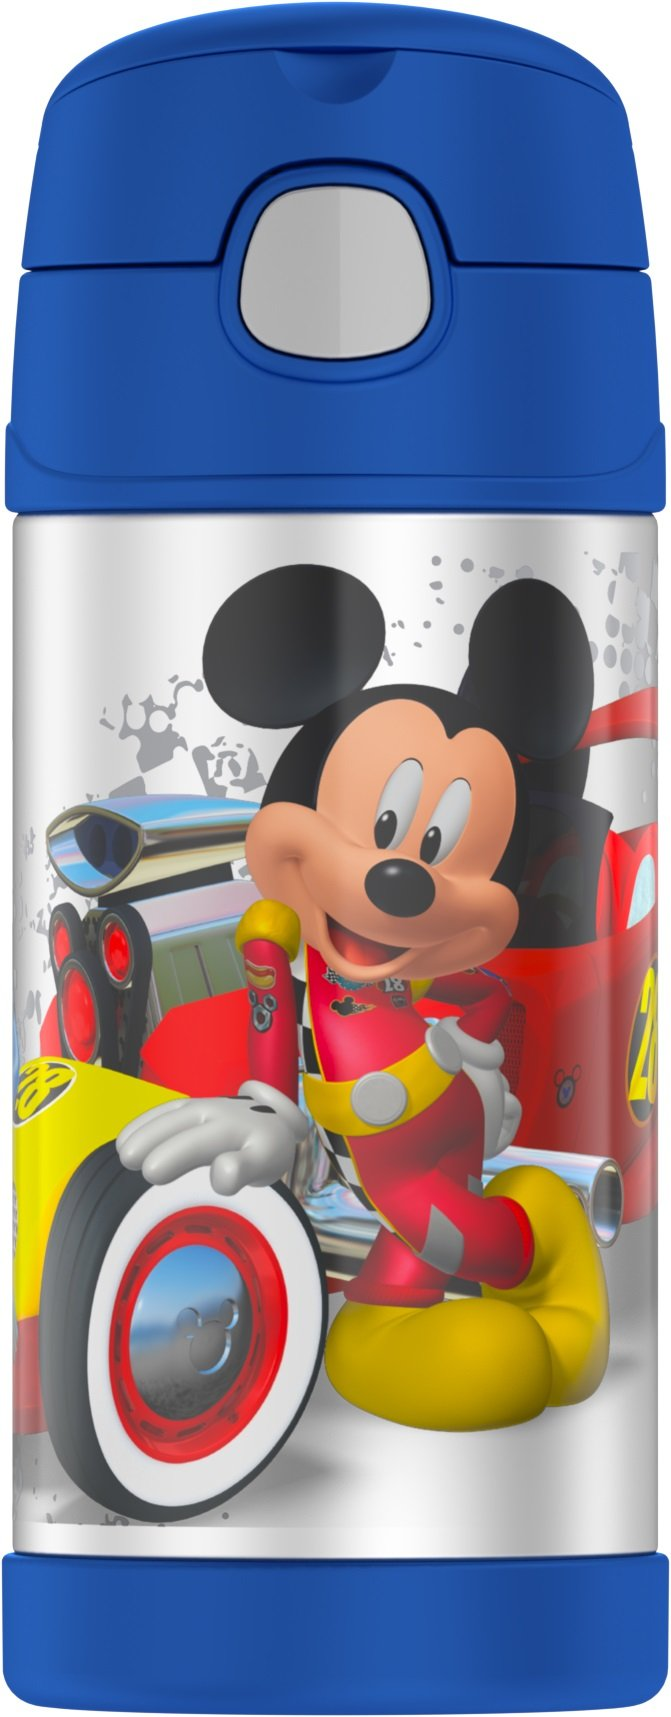 Thermos Funtainer 12 Ounce Bottle, Mickey Mouse by Thermos